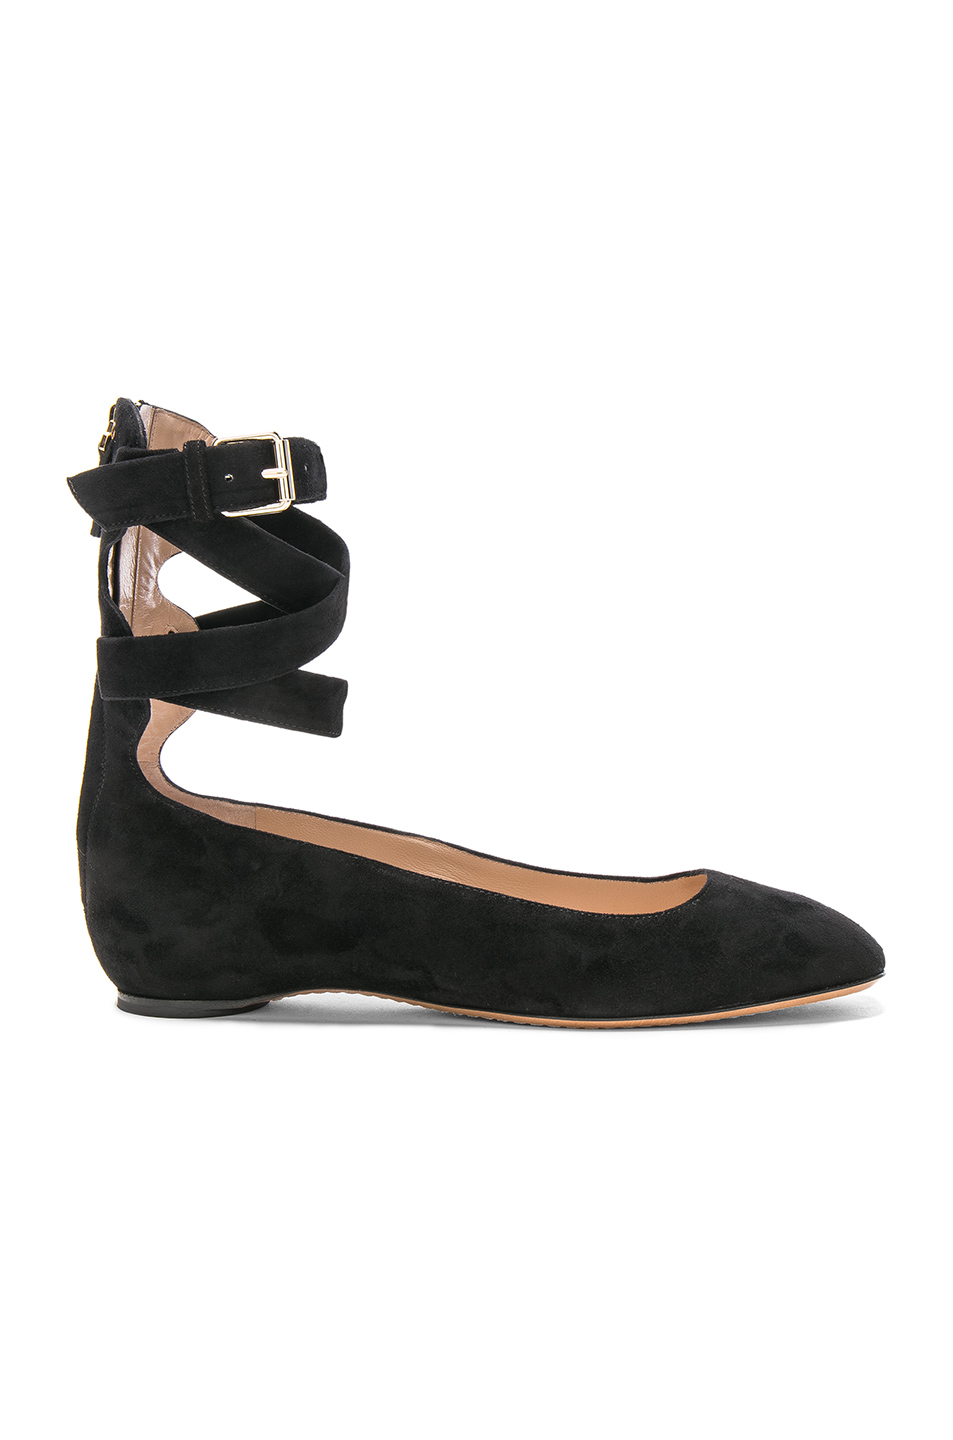 Photo of Valentino Suede Ankle Strap Flats in Black online sales